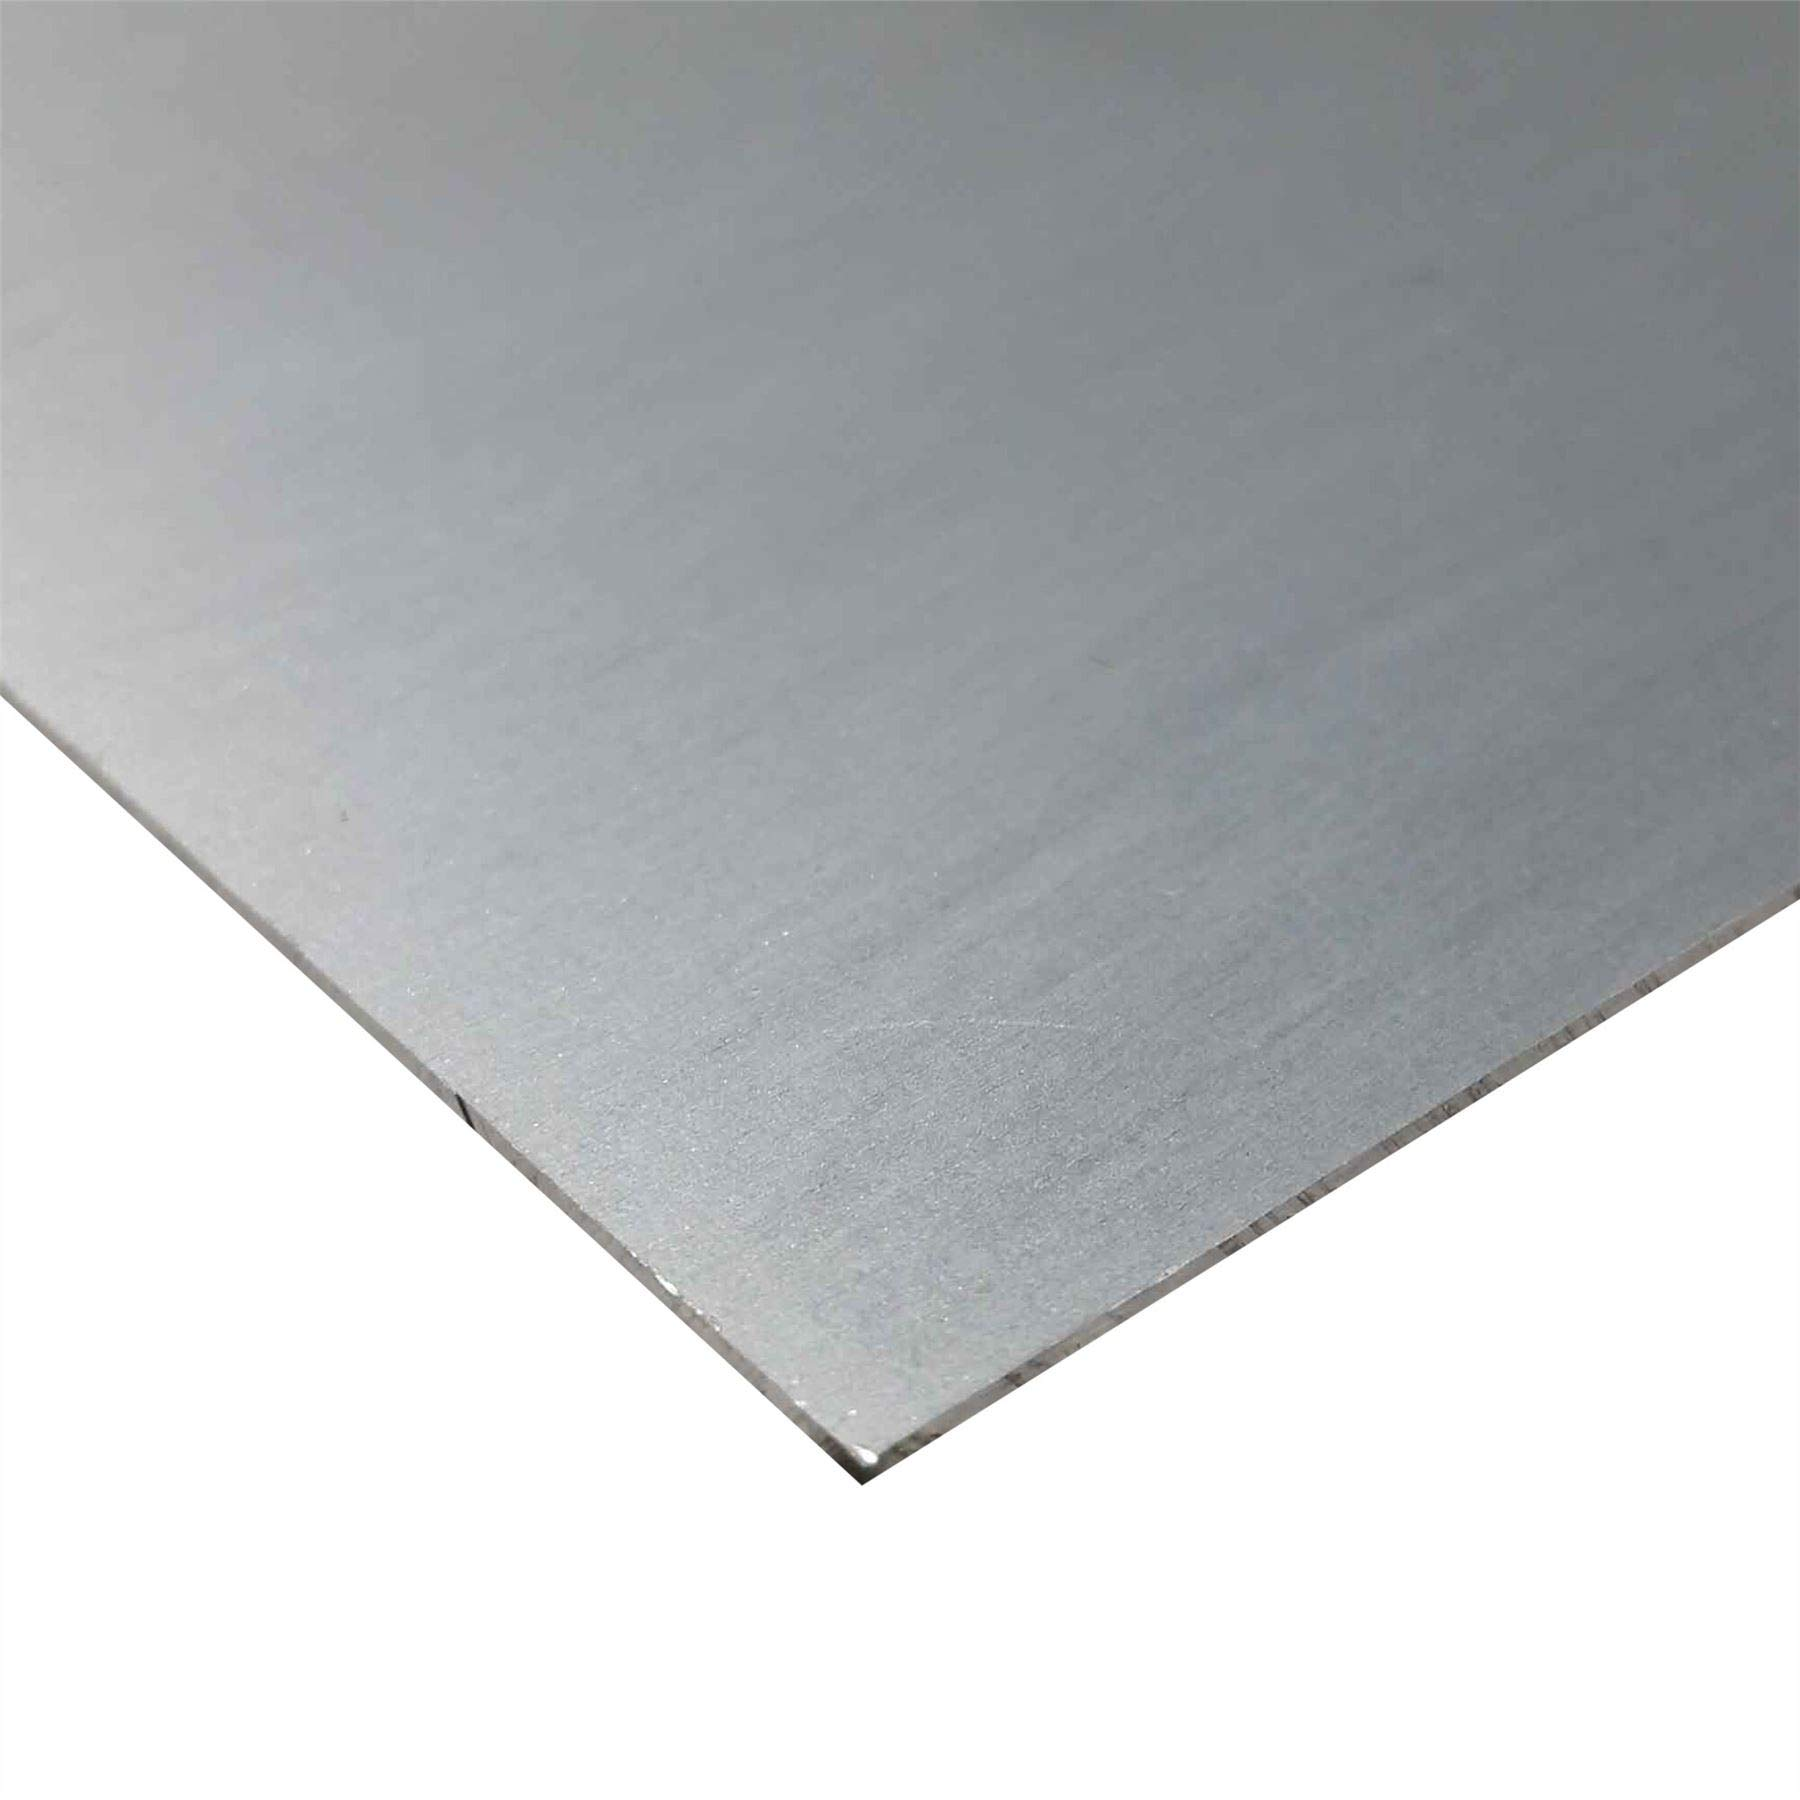 Online Metal Supply 3003-H14 Aluminum Sheet, 0.080'' x 24'' x 48'' by Online Metal Supply